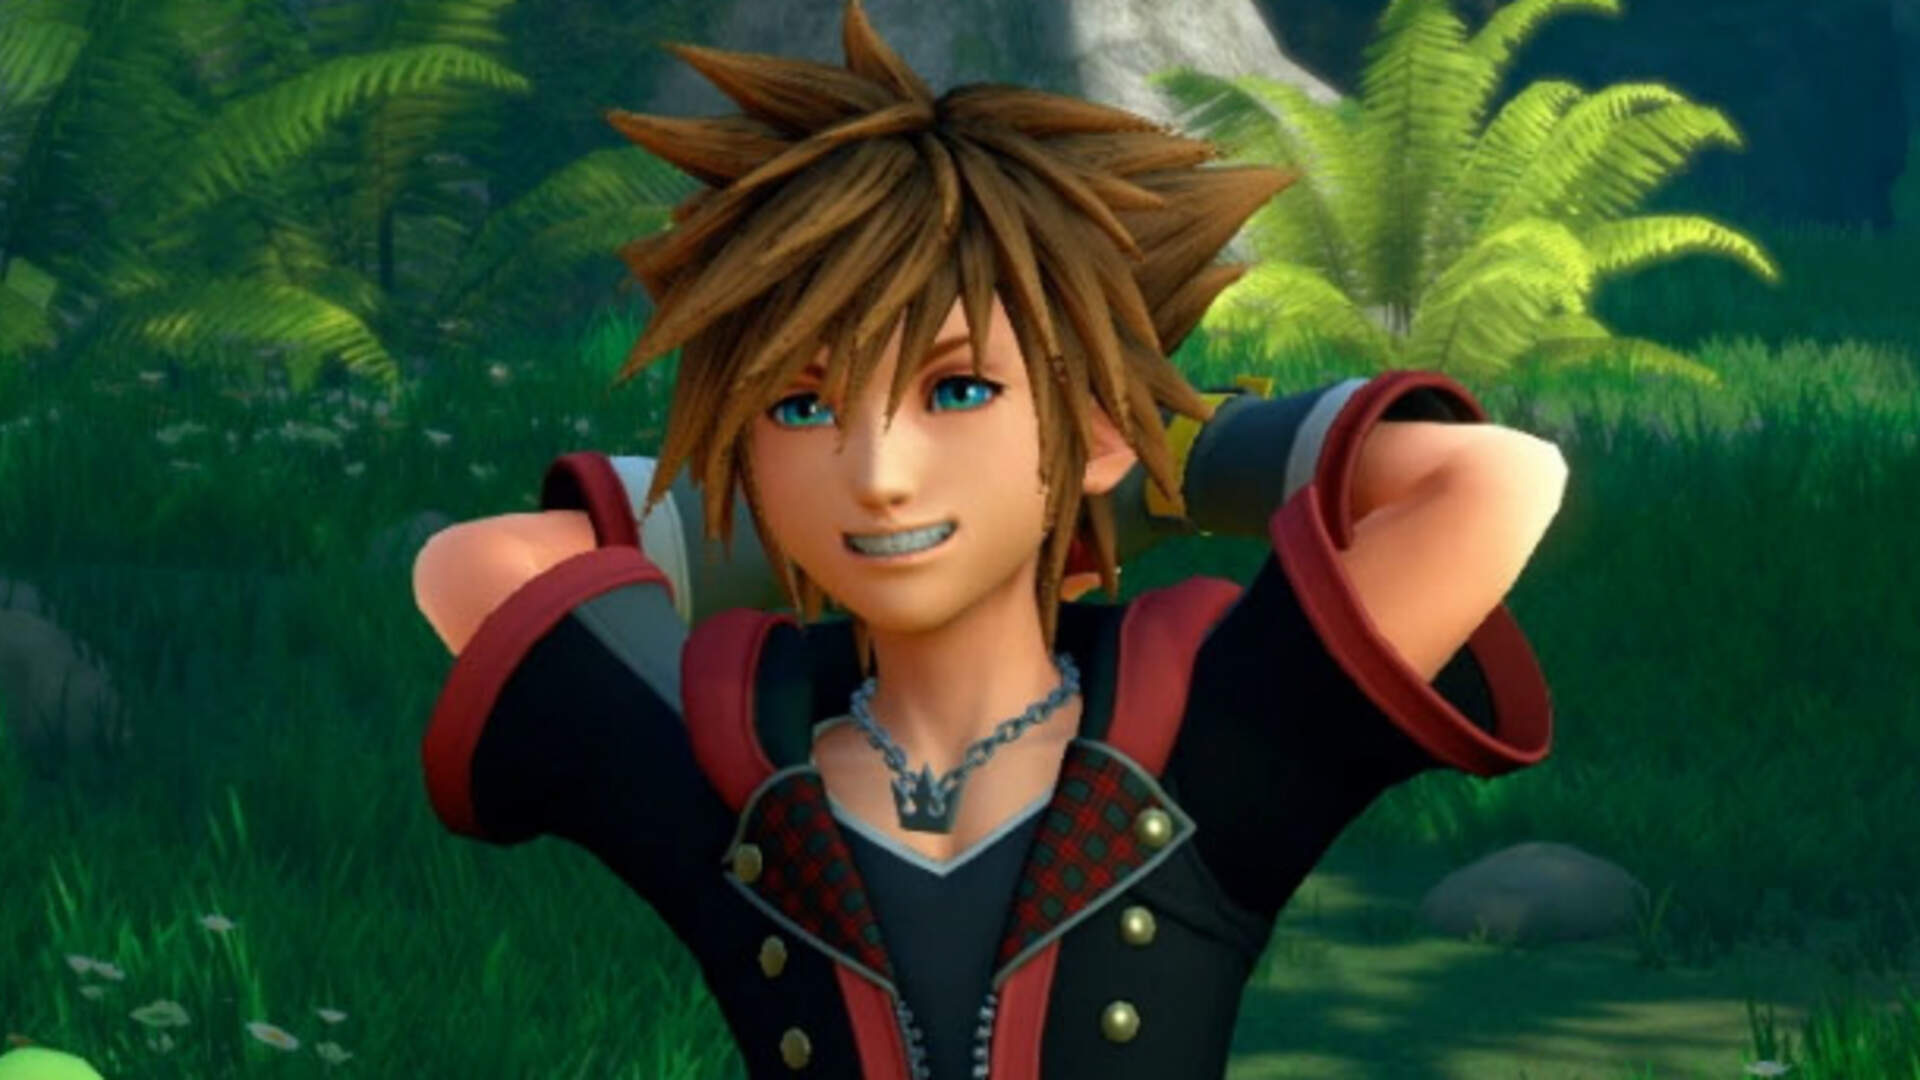 New Kingdom Hearts 3 Trailer Shows Big Hero 6 Characters in Action